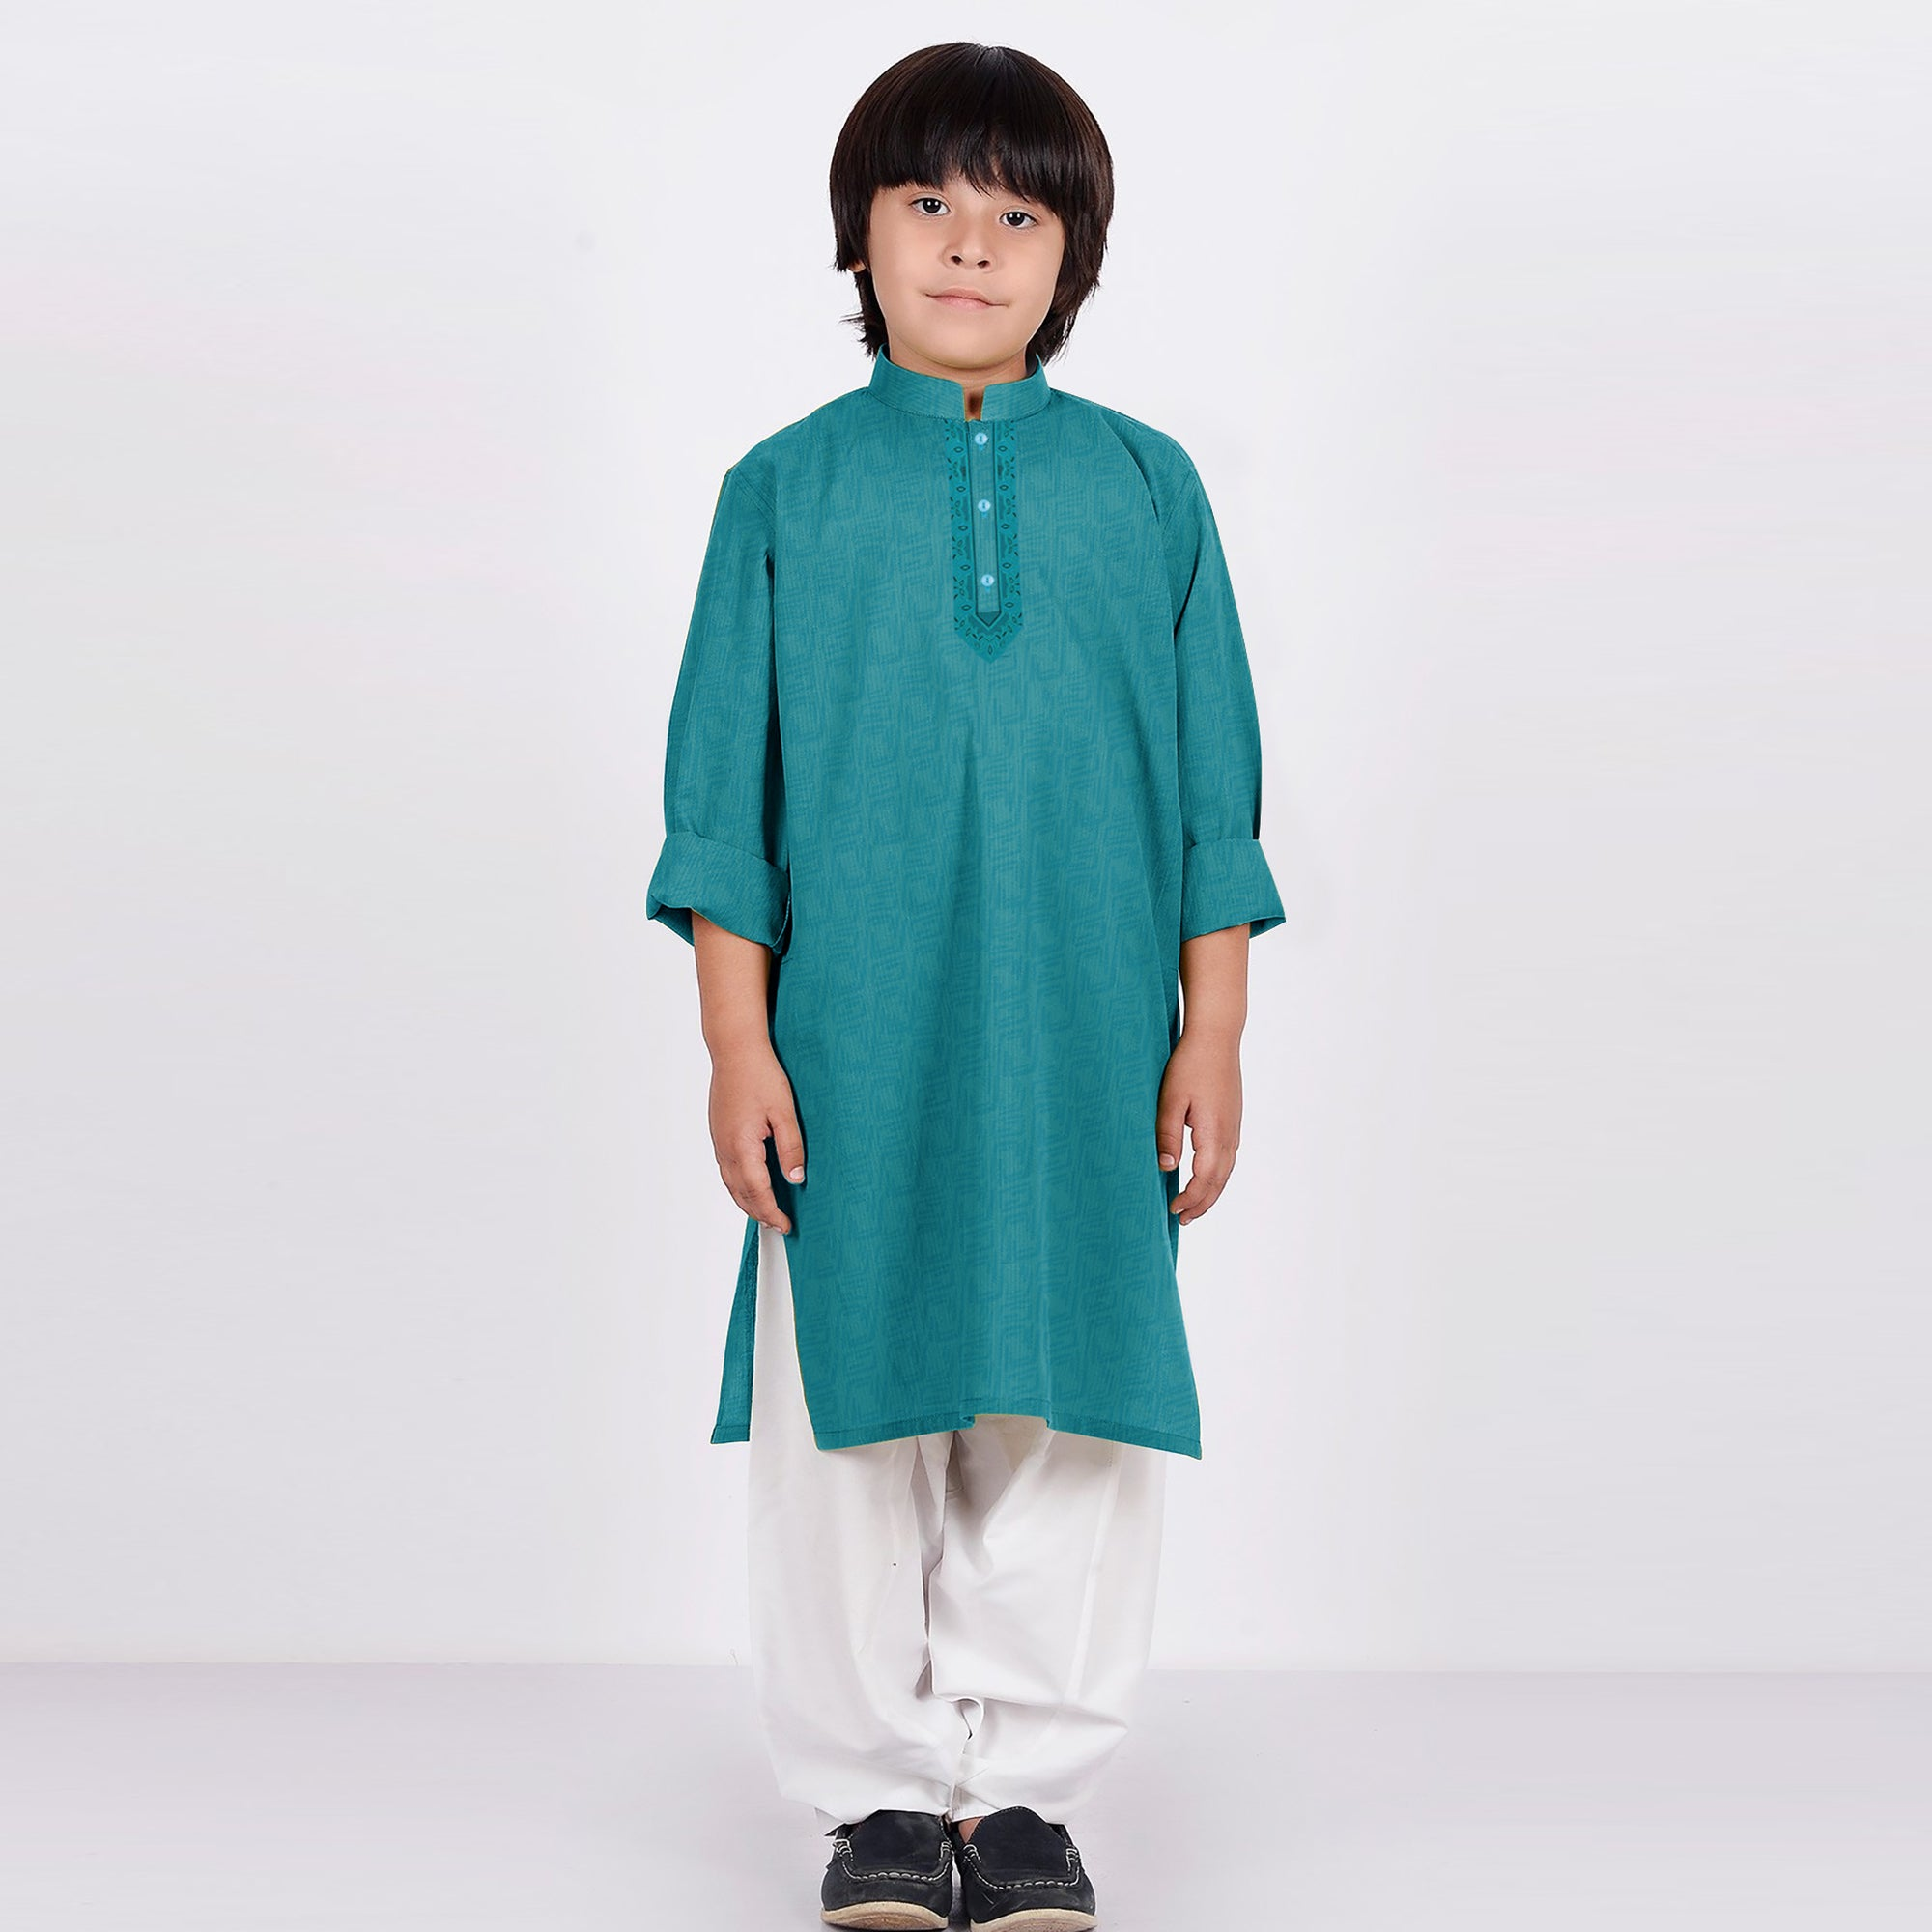 Premium Kurta & Shalwar For Boys-Cyan Green with White-BE6922